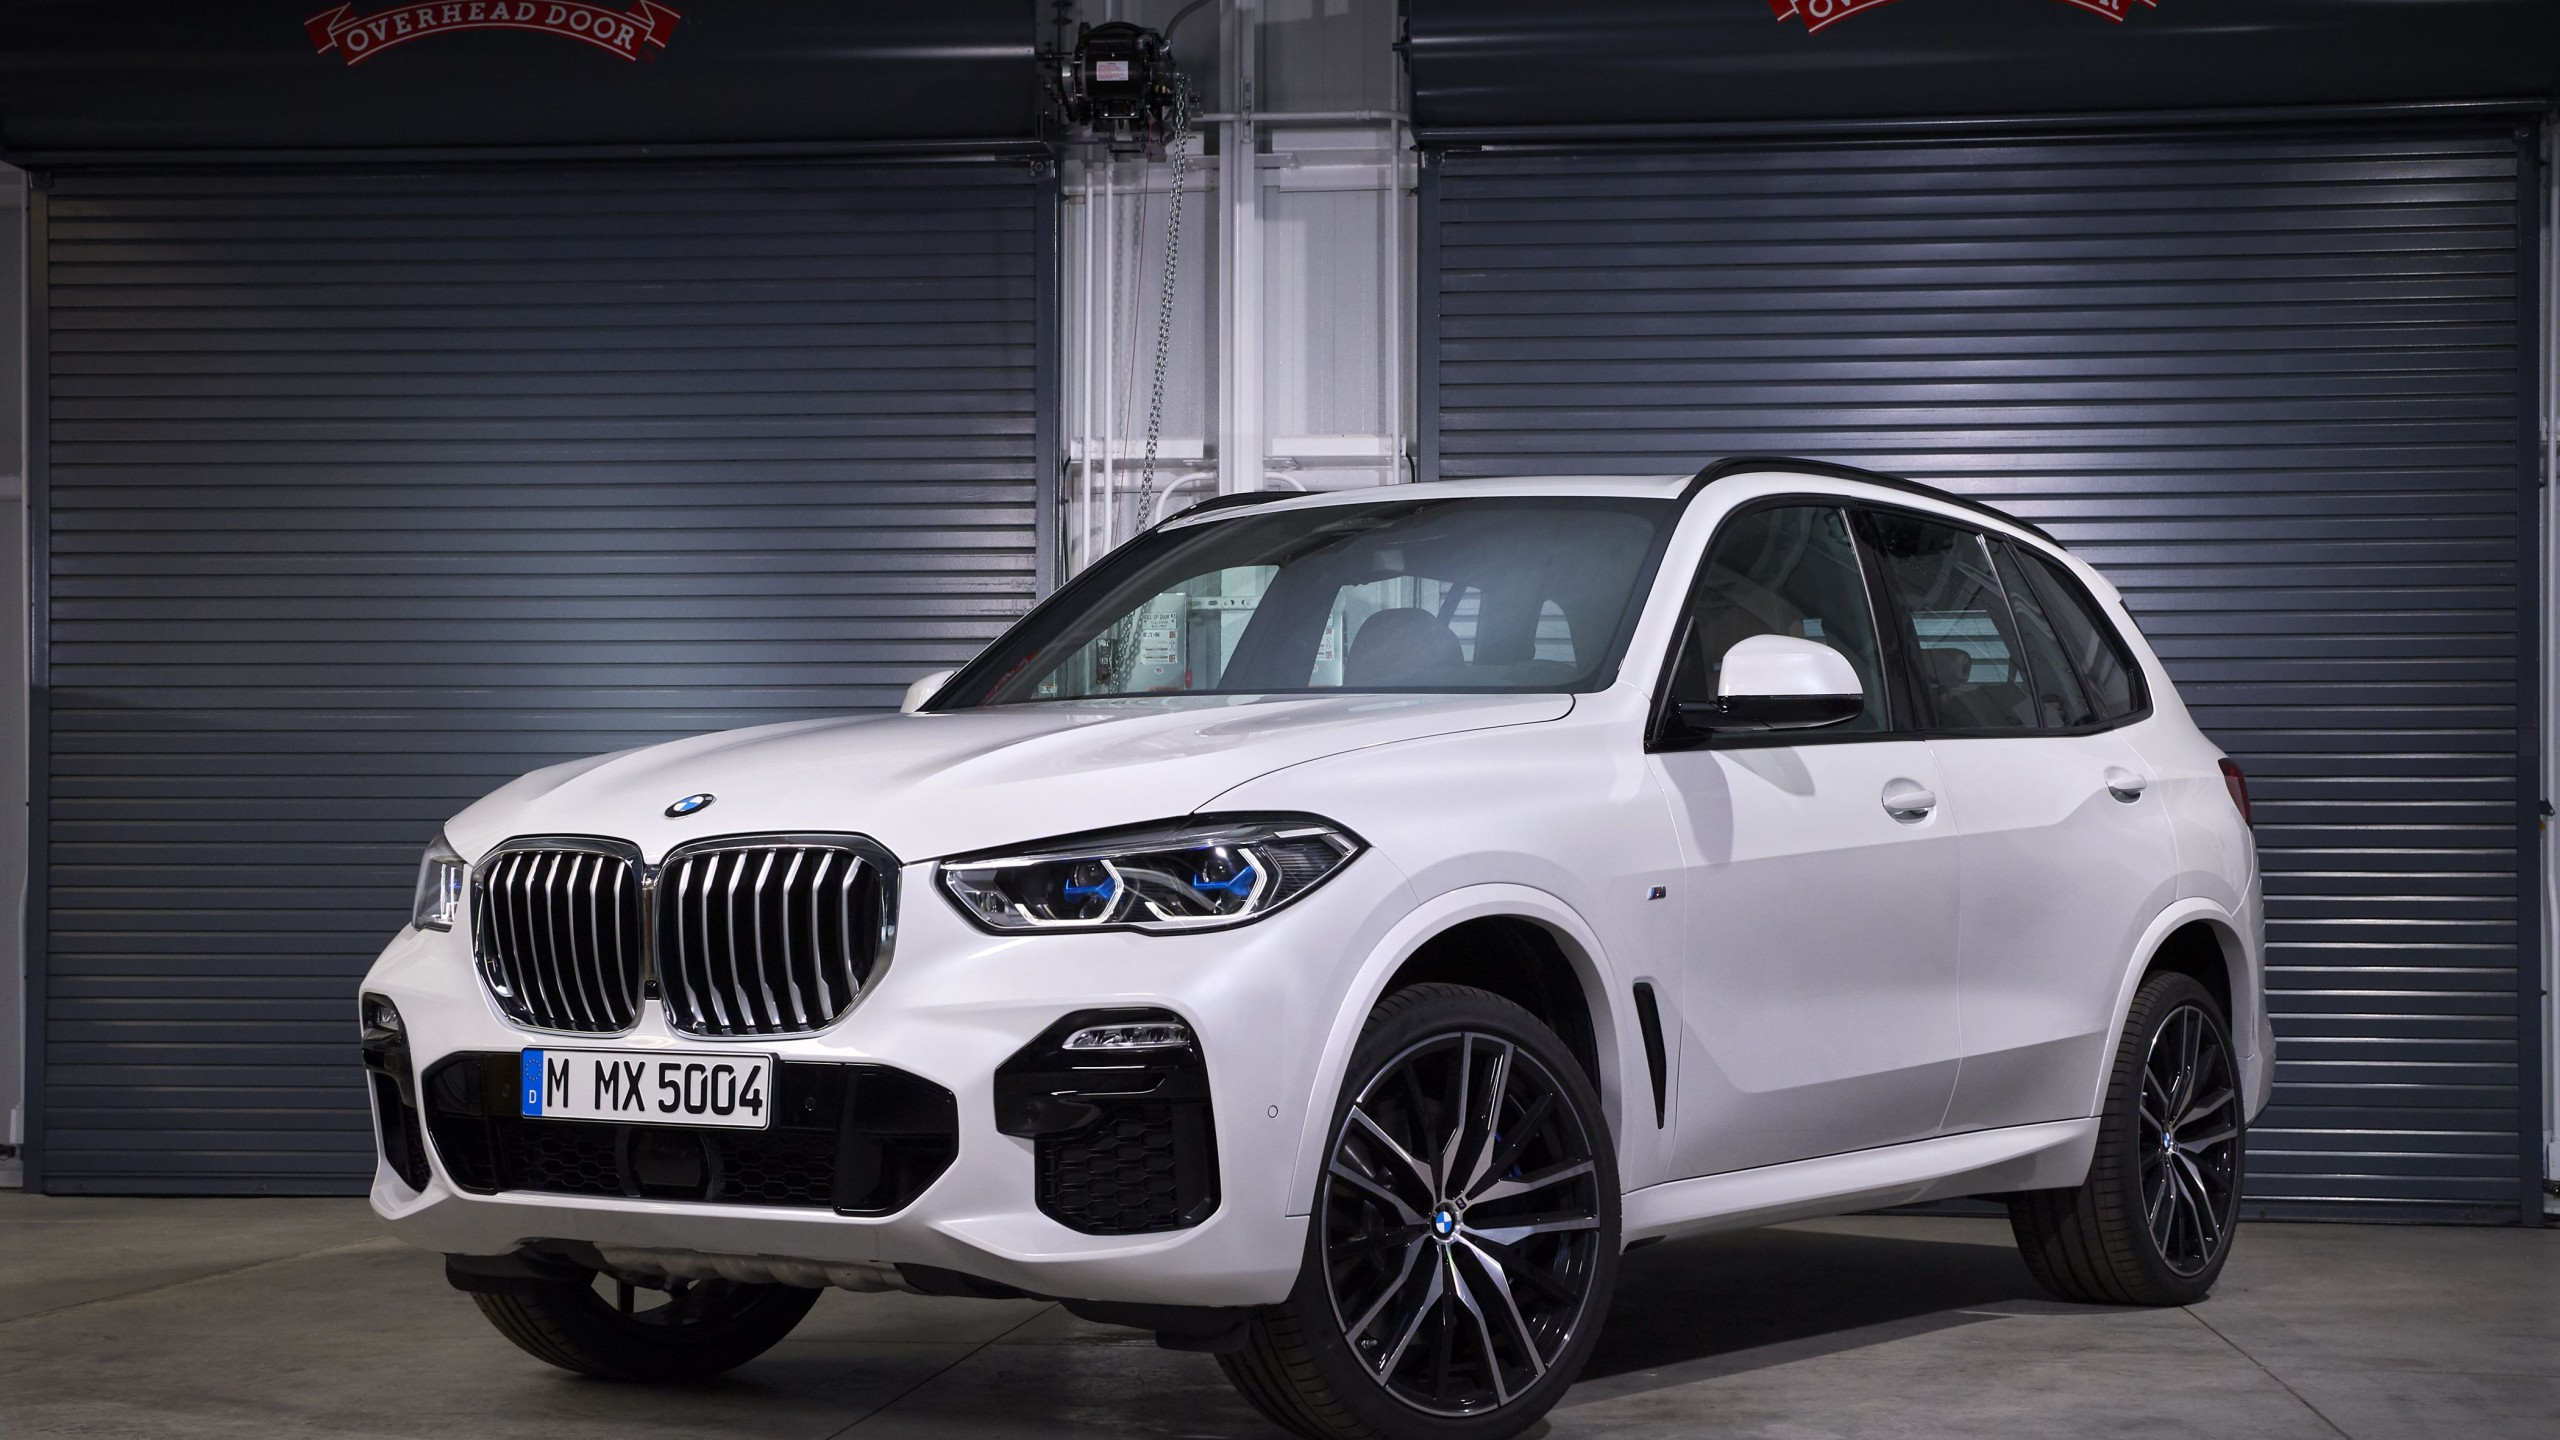 Wallpaper Bmw X5 Suv 2019 Cars 4k Cars Amp Bikes 18849